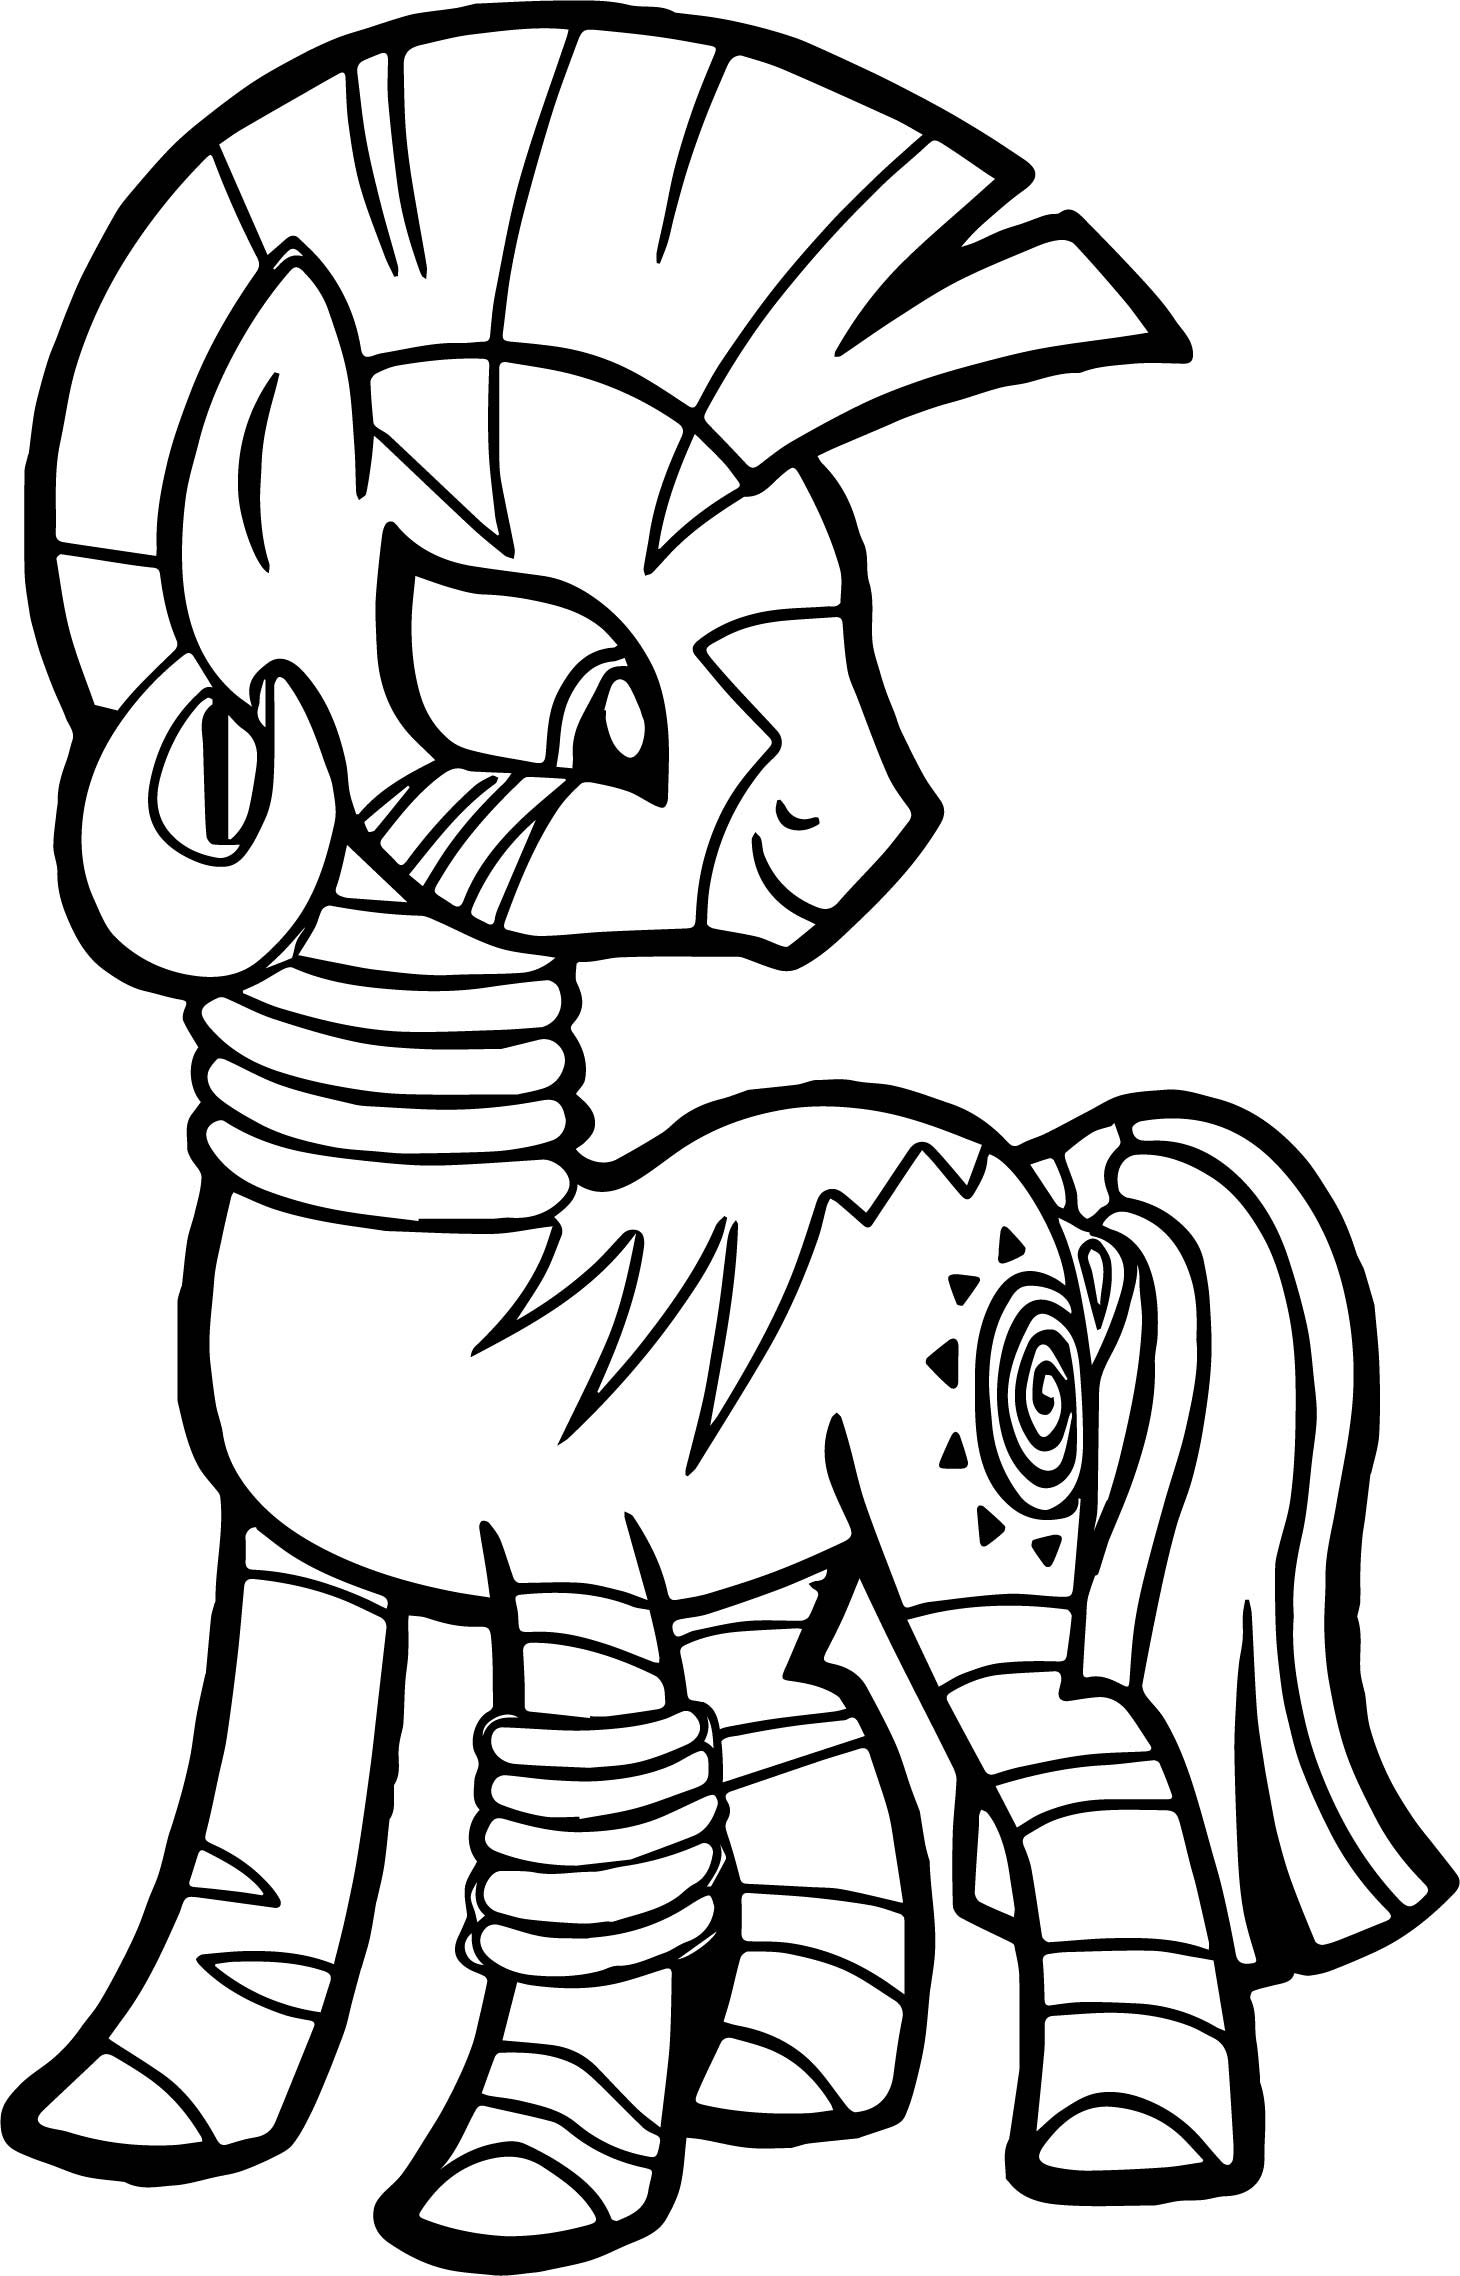 My Little Pony Zecora Coloring Pages : Zecora look back coloring page wecoloringpage